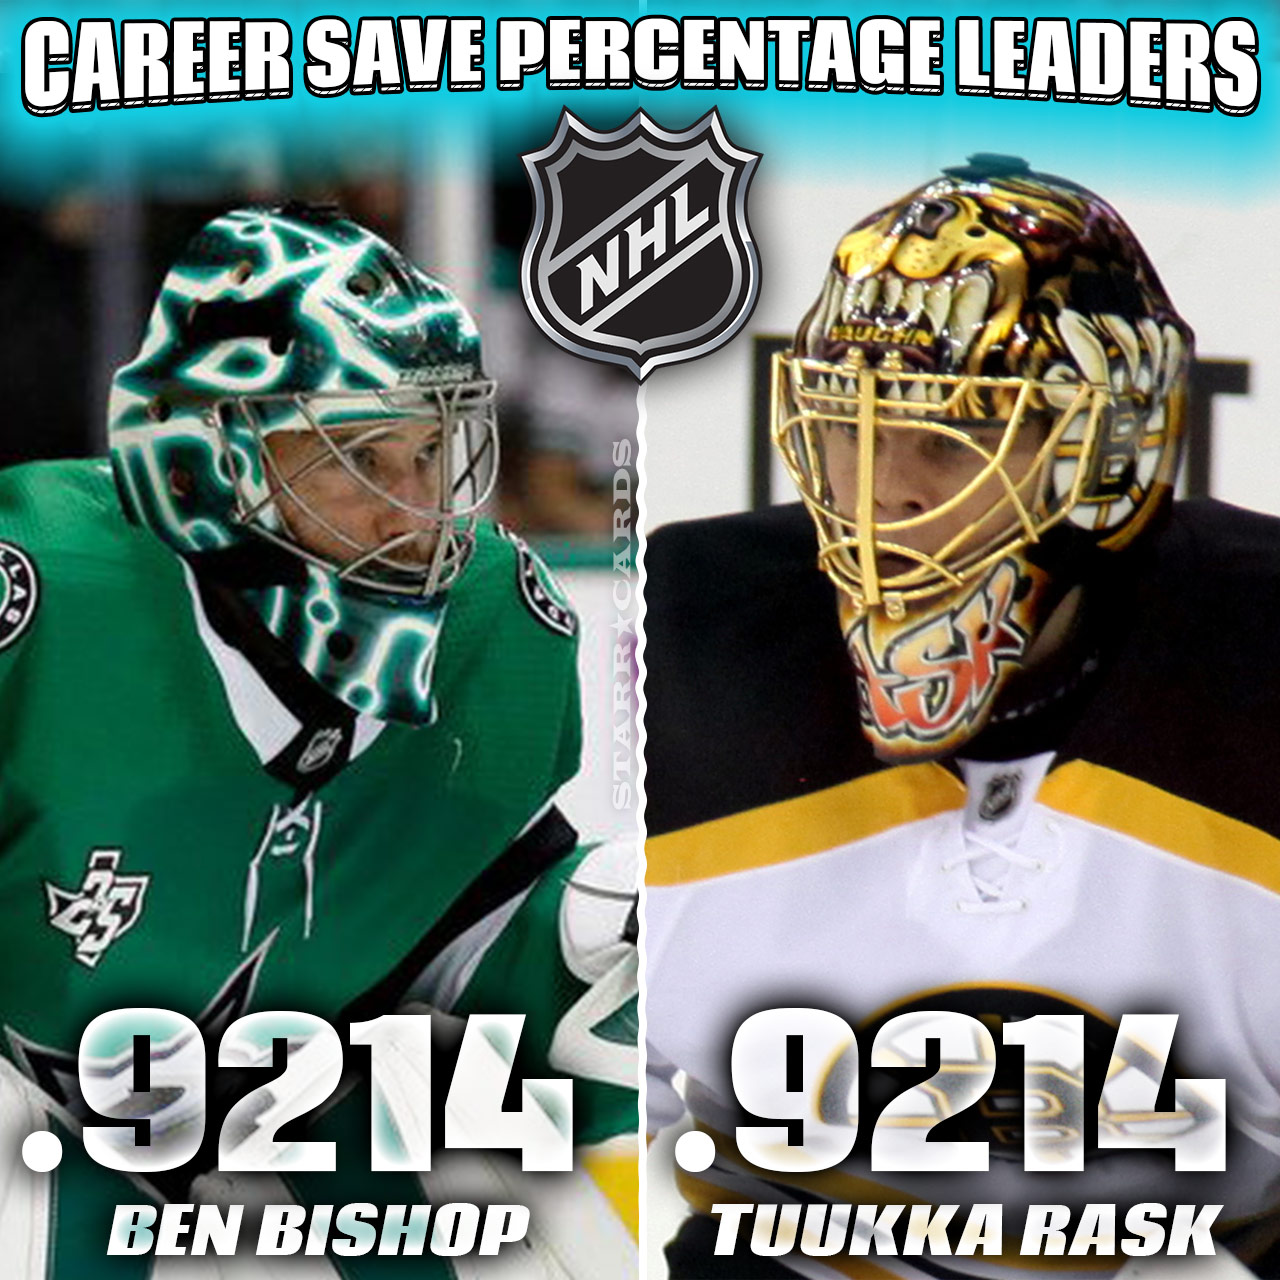 NHL Career Save Percentage Leaders headed by Cory Schneider and Tuukka Rask